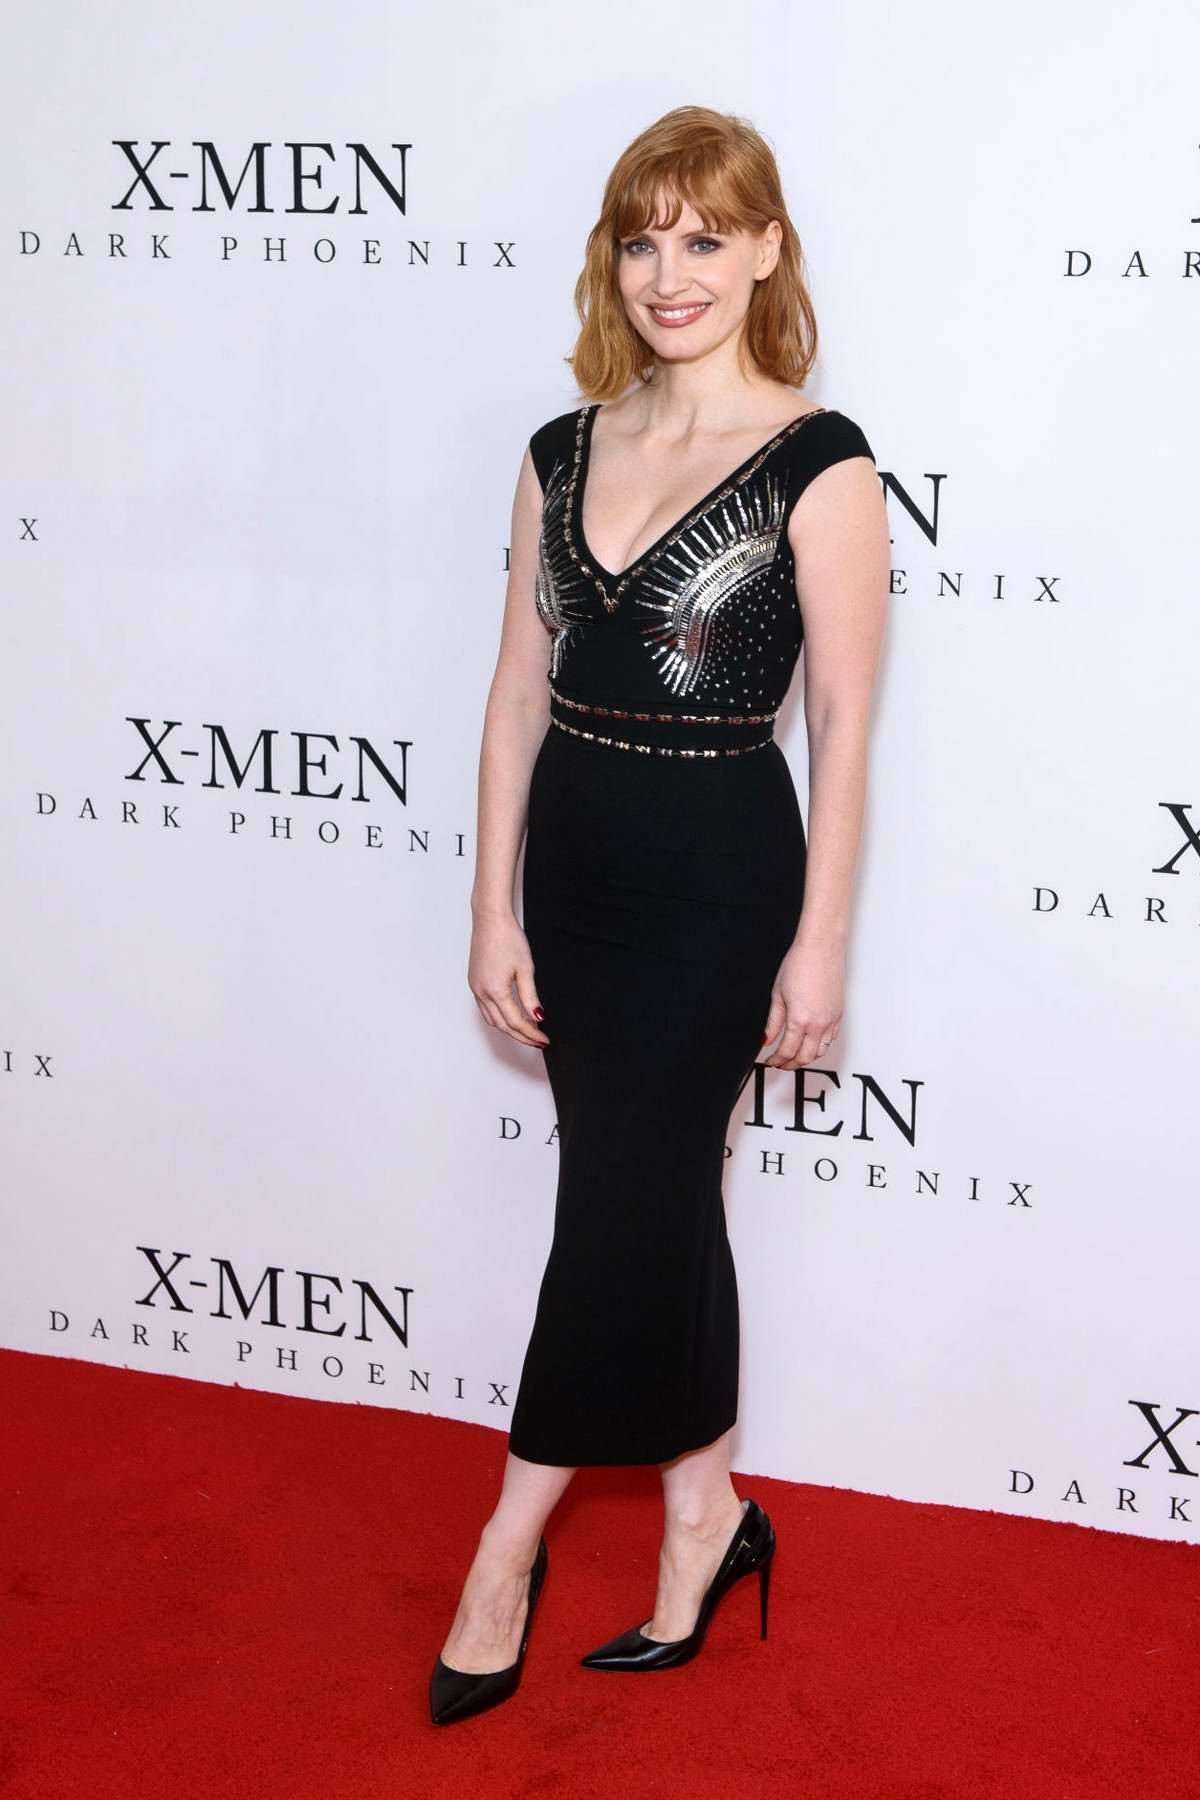 Jessica Chastain attends an exclusive fan event photocall for 'X-Men: Dark Phoenix' at the Picturehouse Central in London, UK